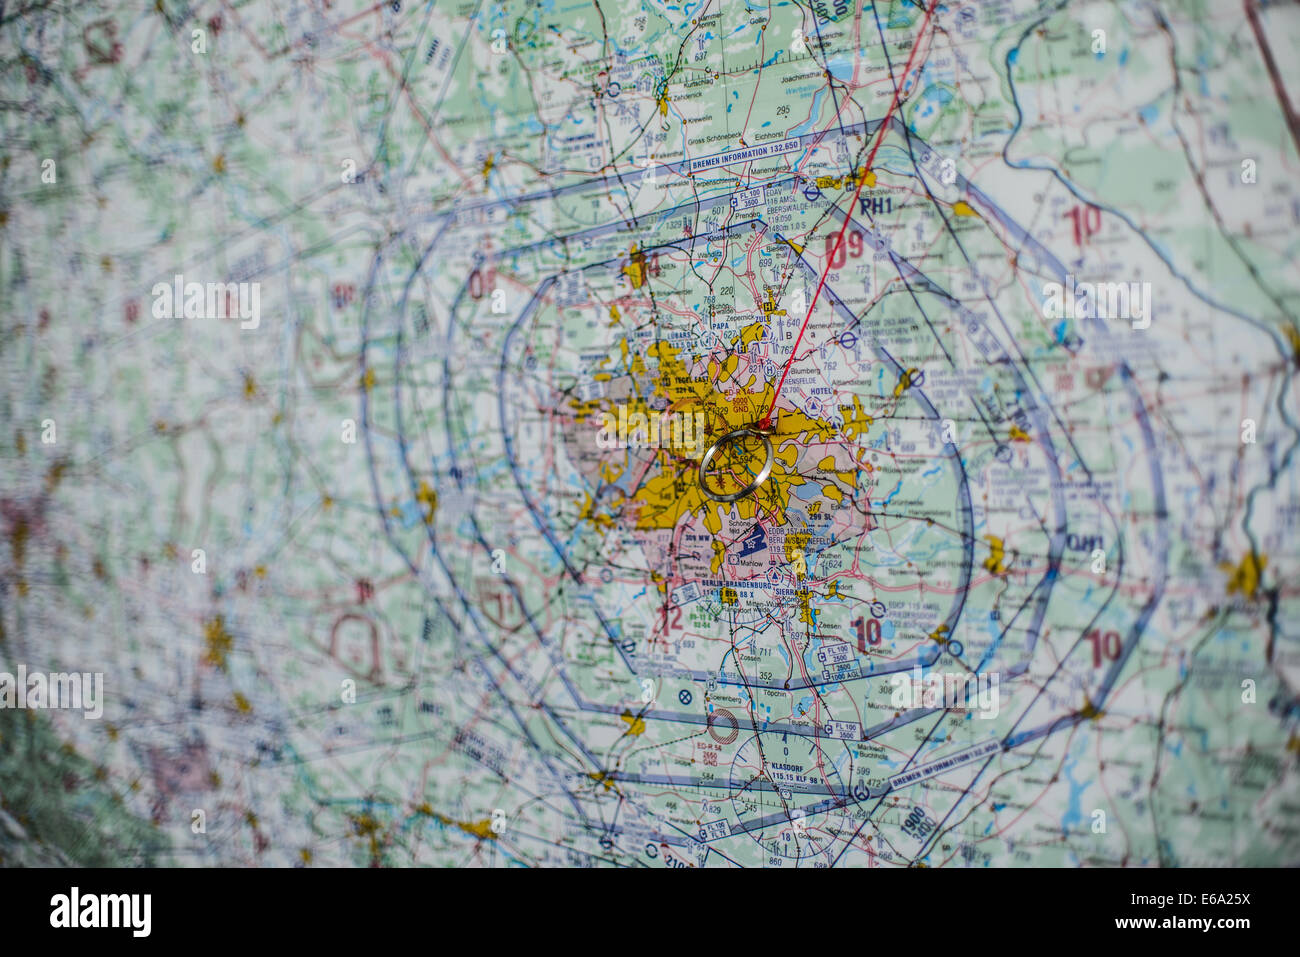 Berlin, Germany. 8th July, 2014. A navigation chart of the rescue helicopter DRF 'Christoph Berlin' on the - Stock Image